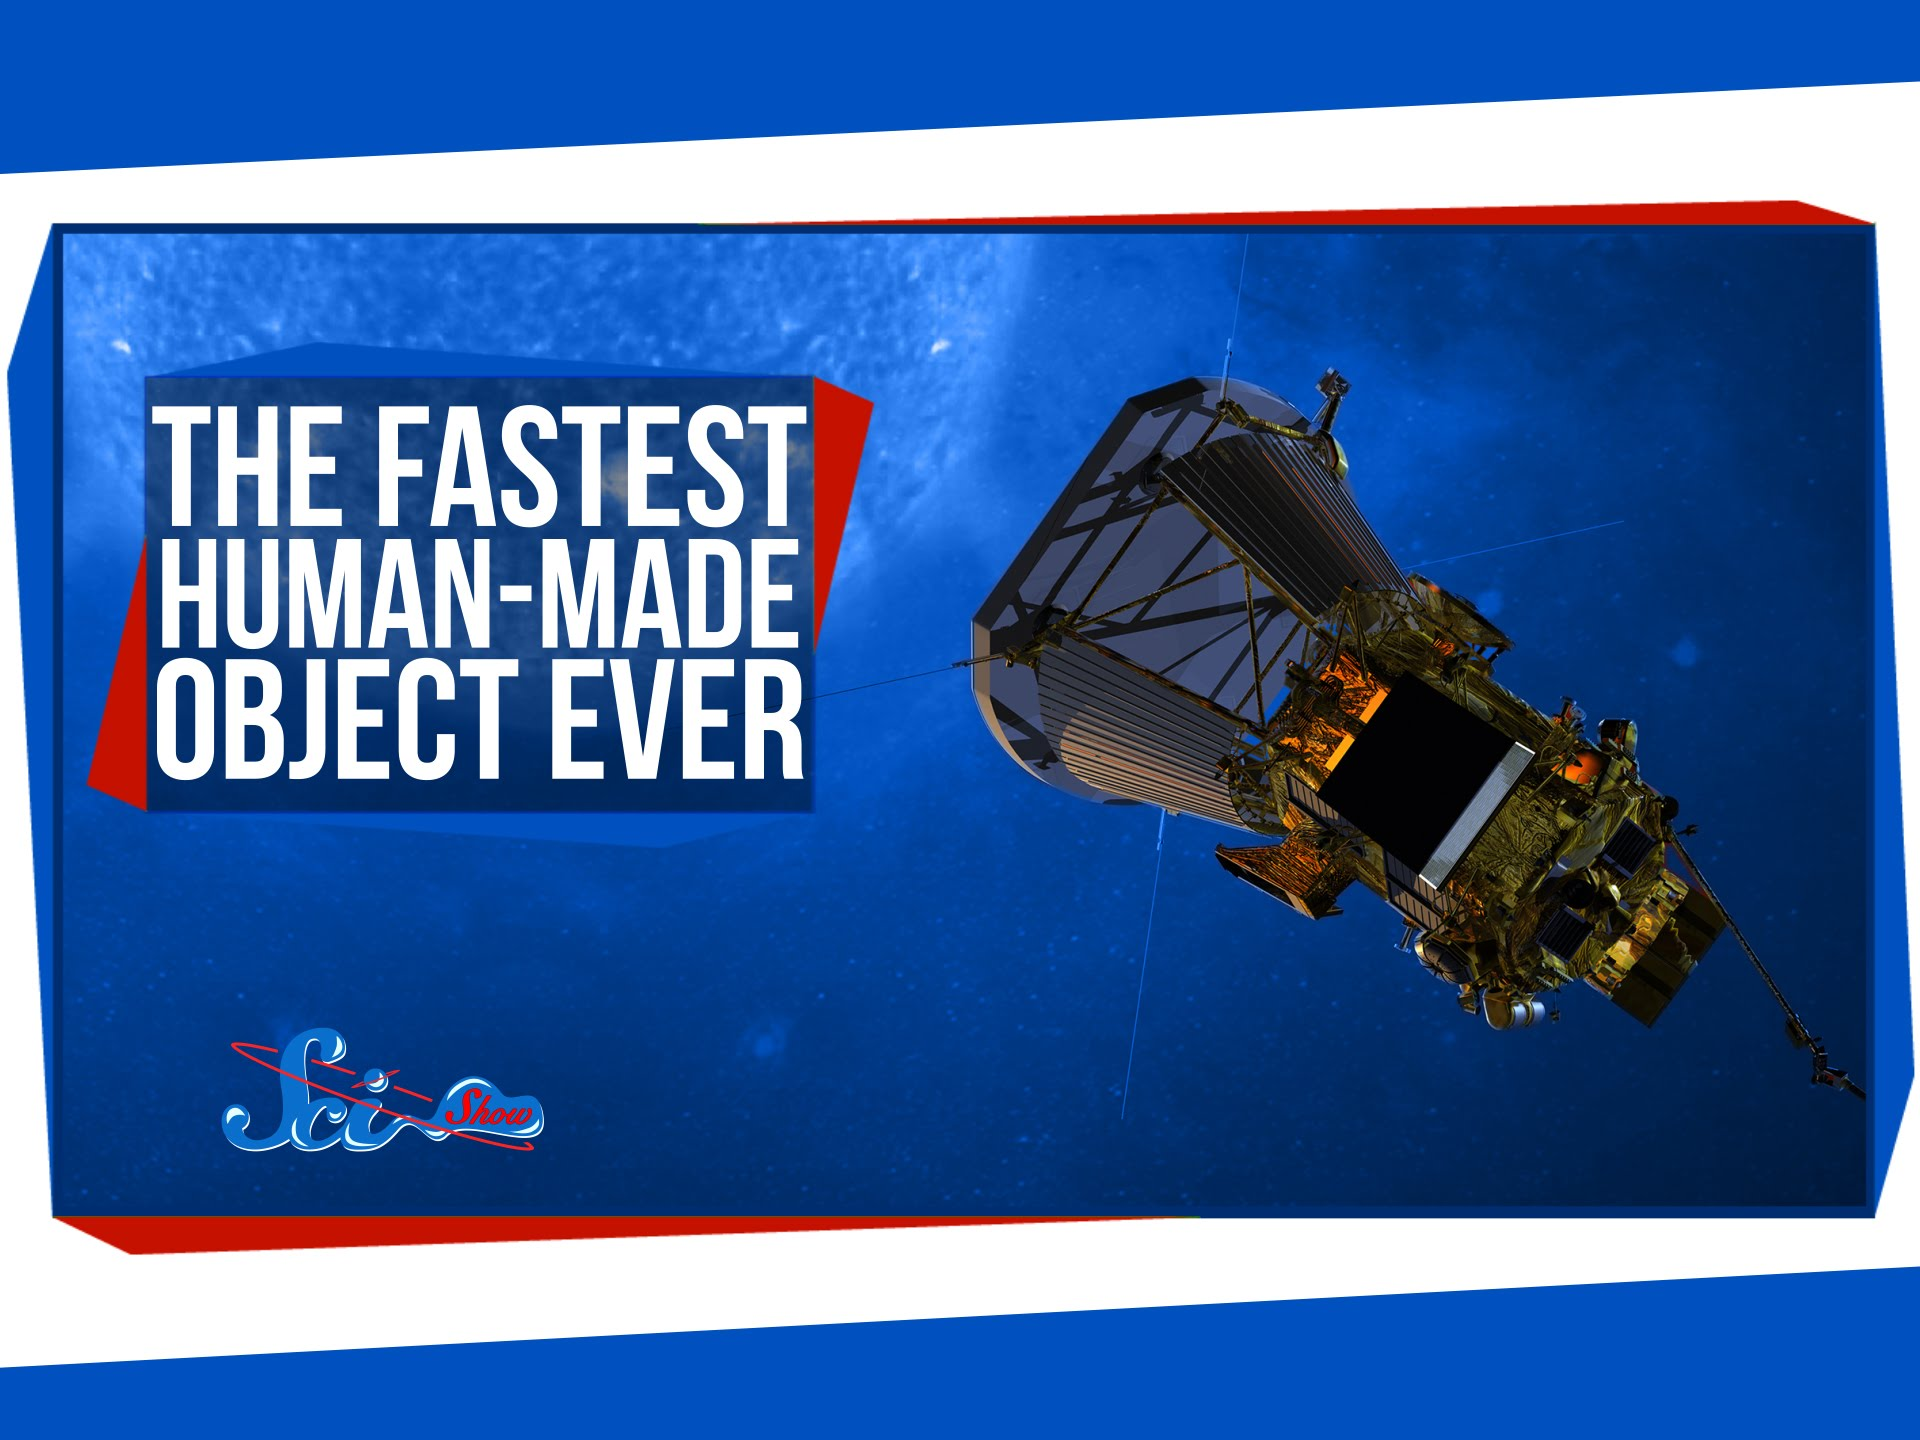 The Fastest Human-Made Object Ever